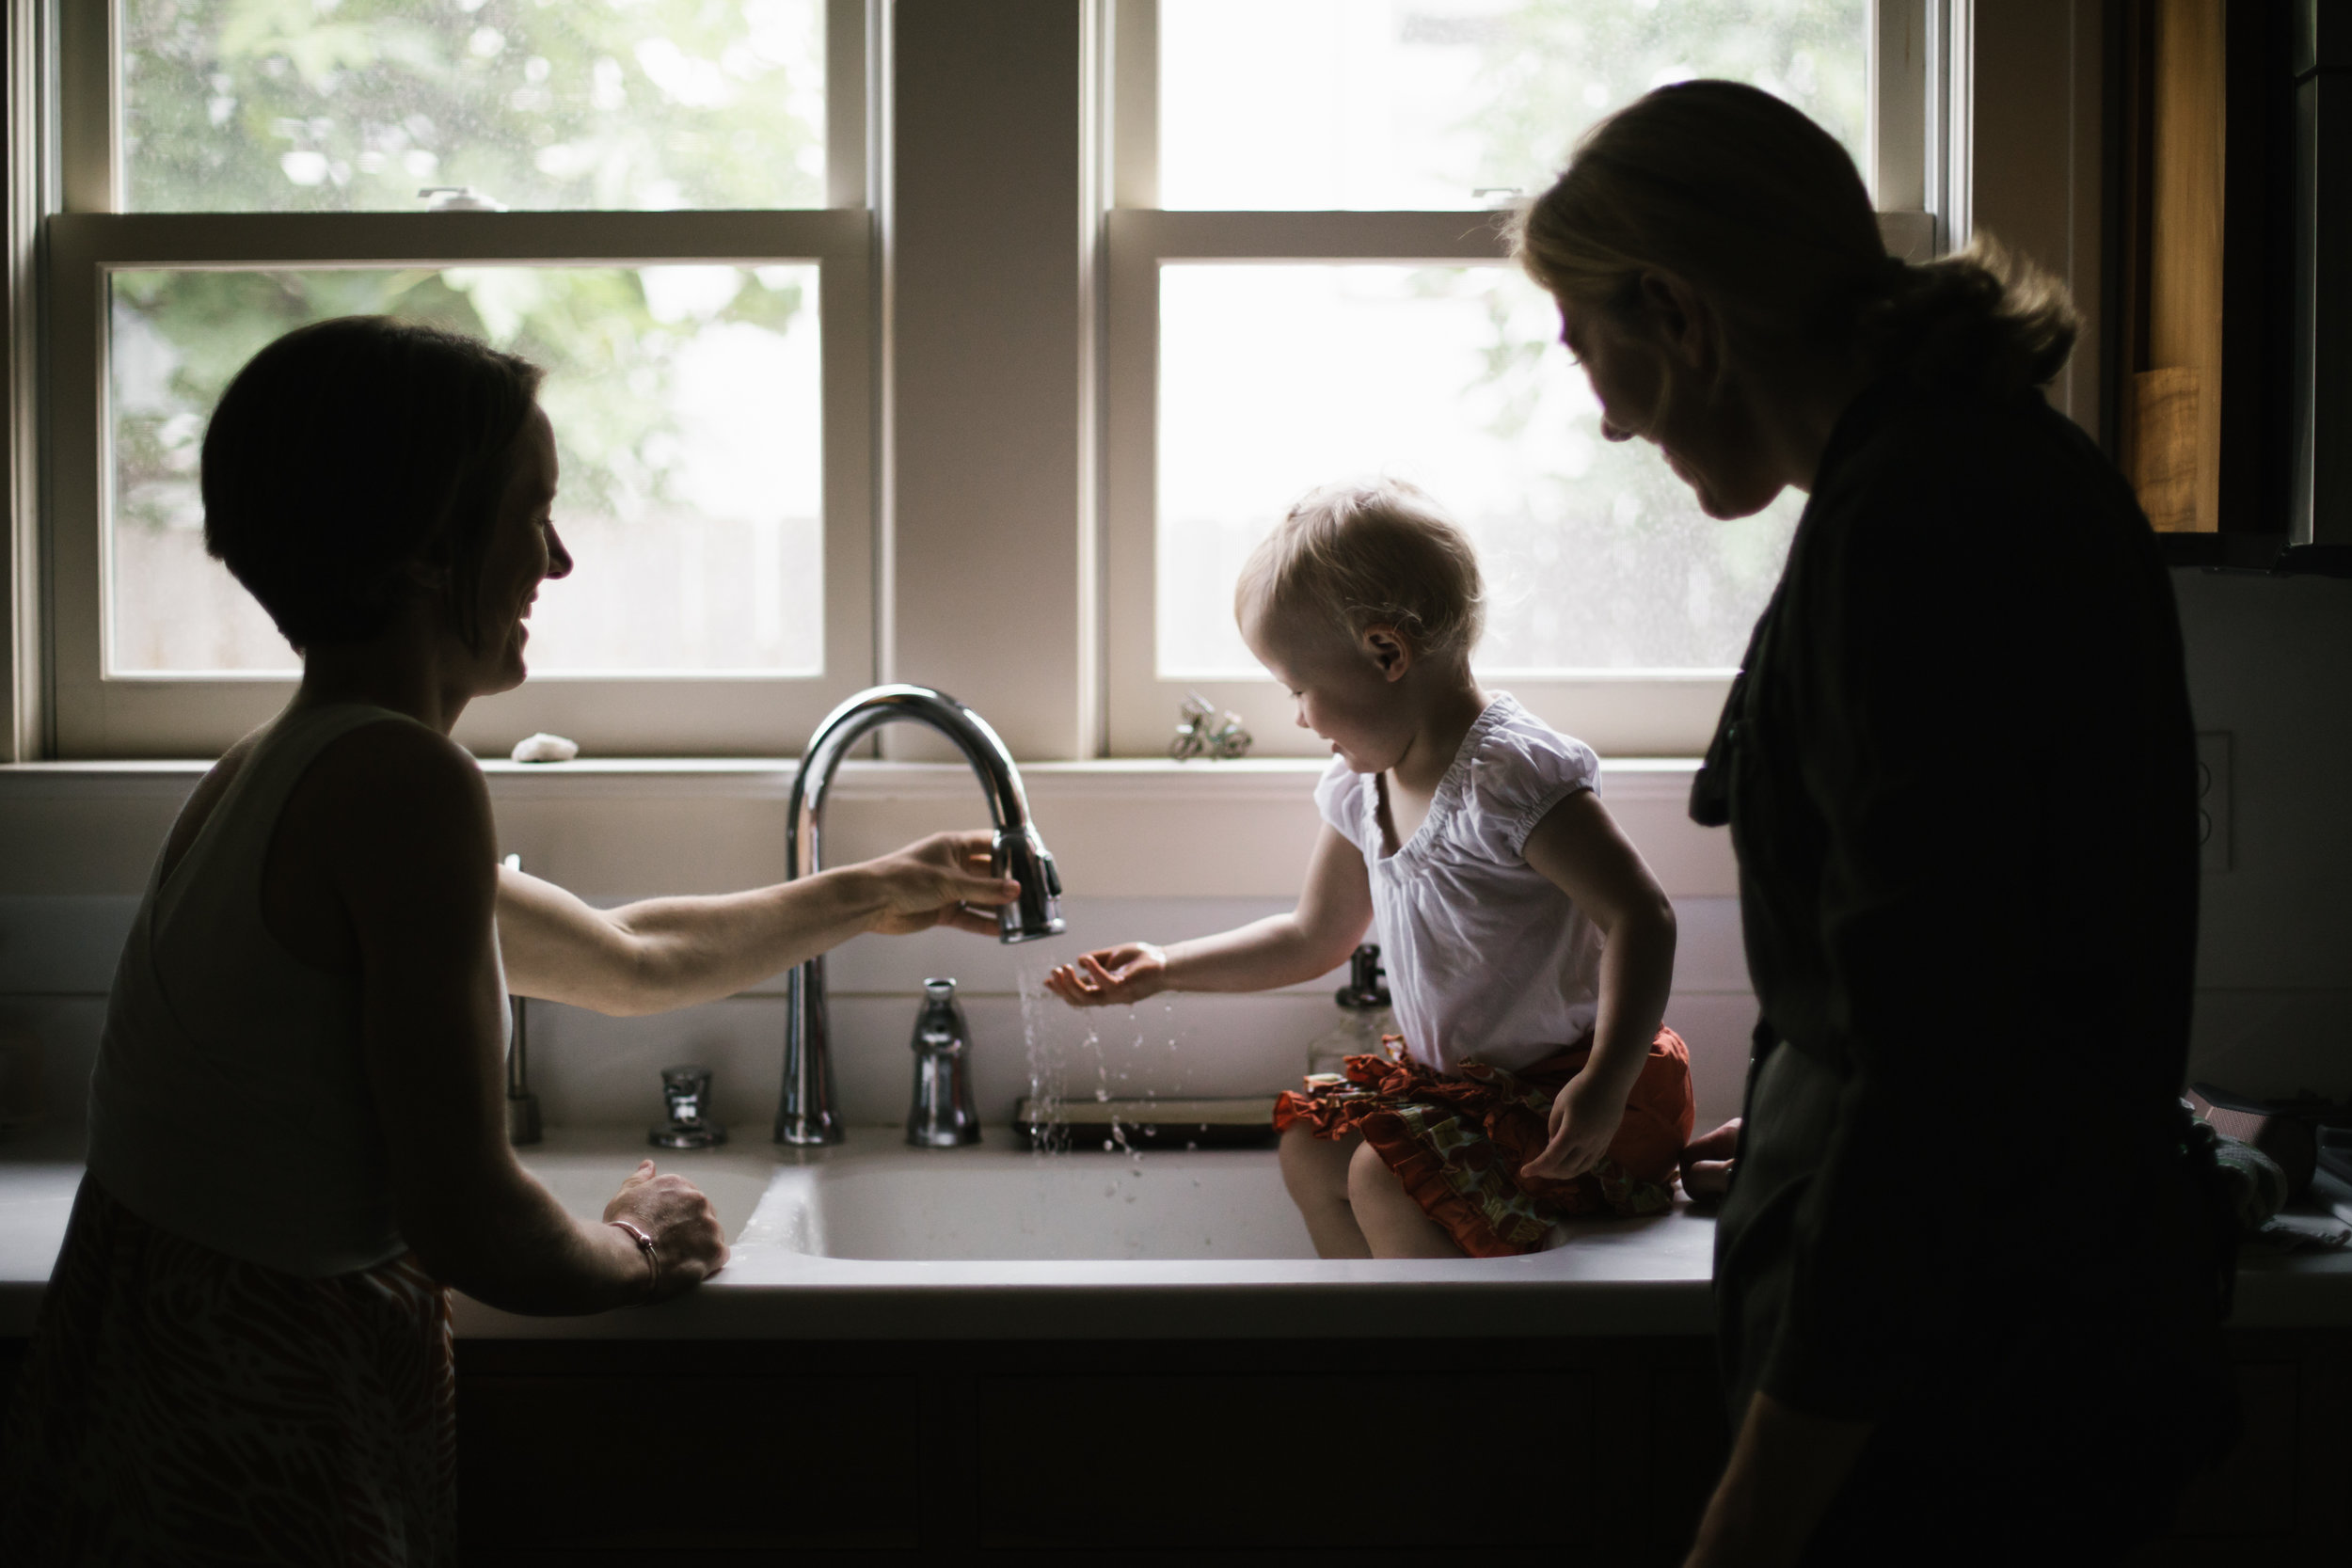 family of three playing in sink